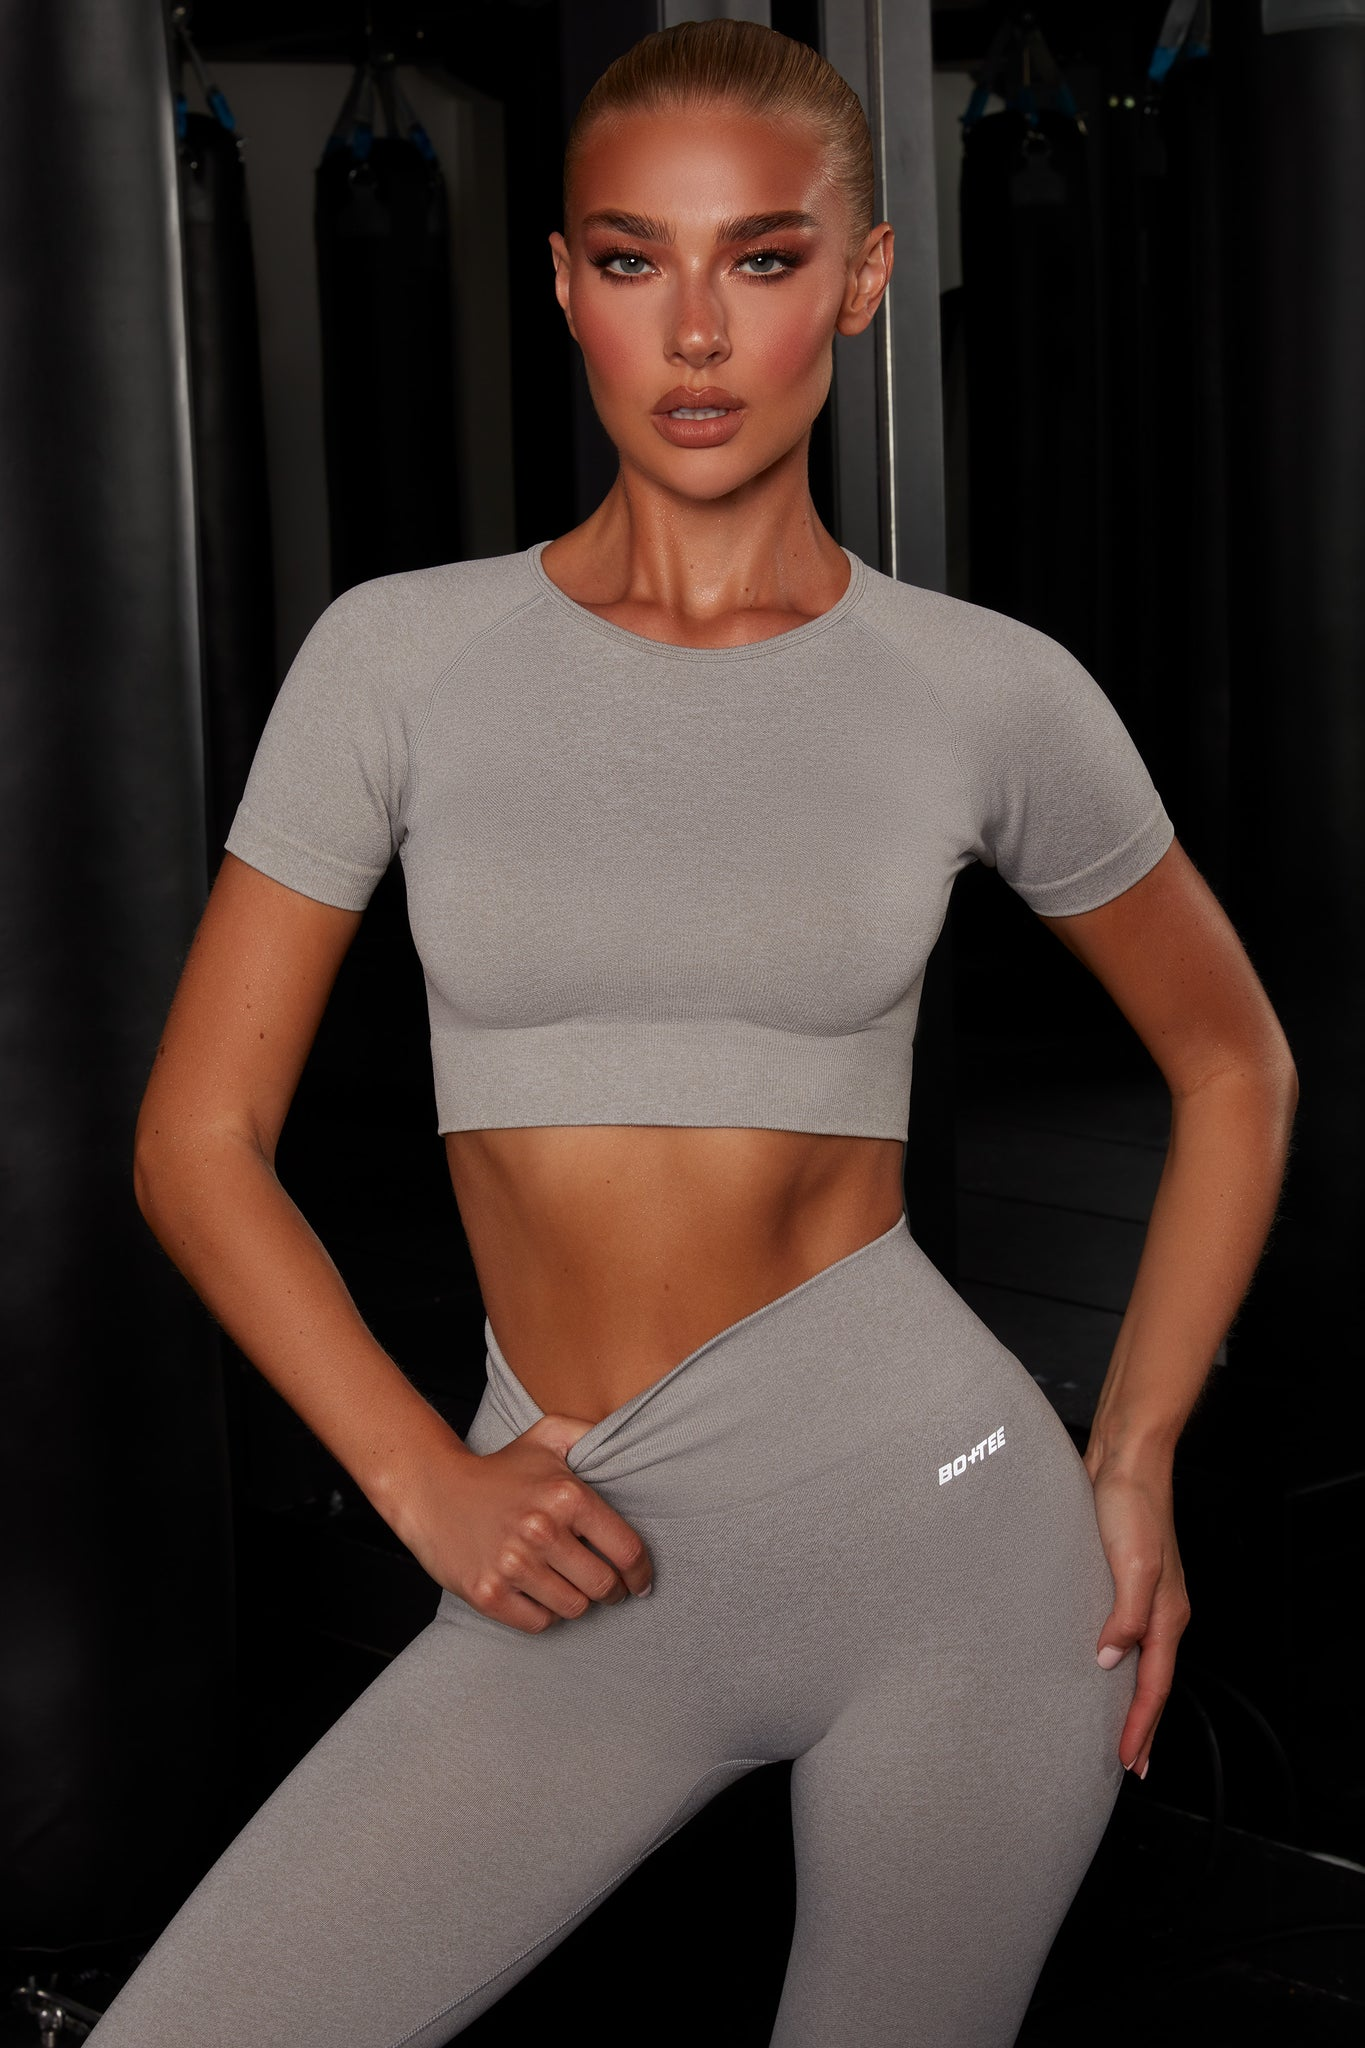 Plain light grey melange round neck crop top with ribbed underband, reflective branding and short sleeves. Image 1 of 6.